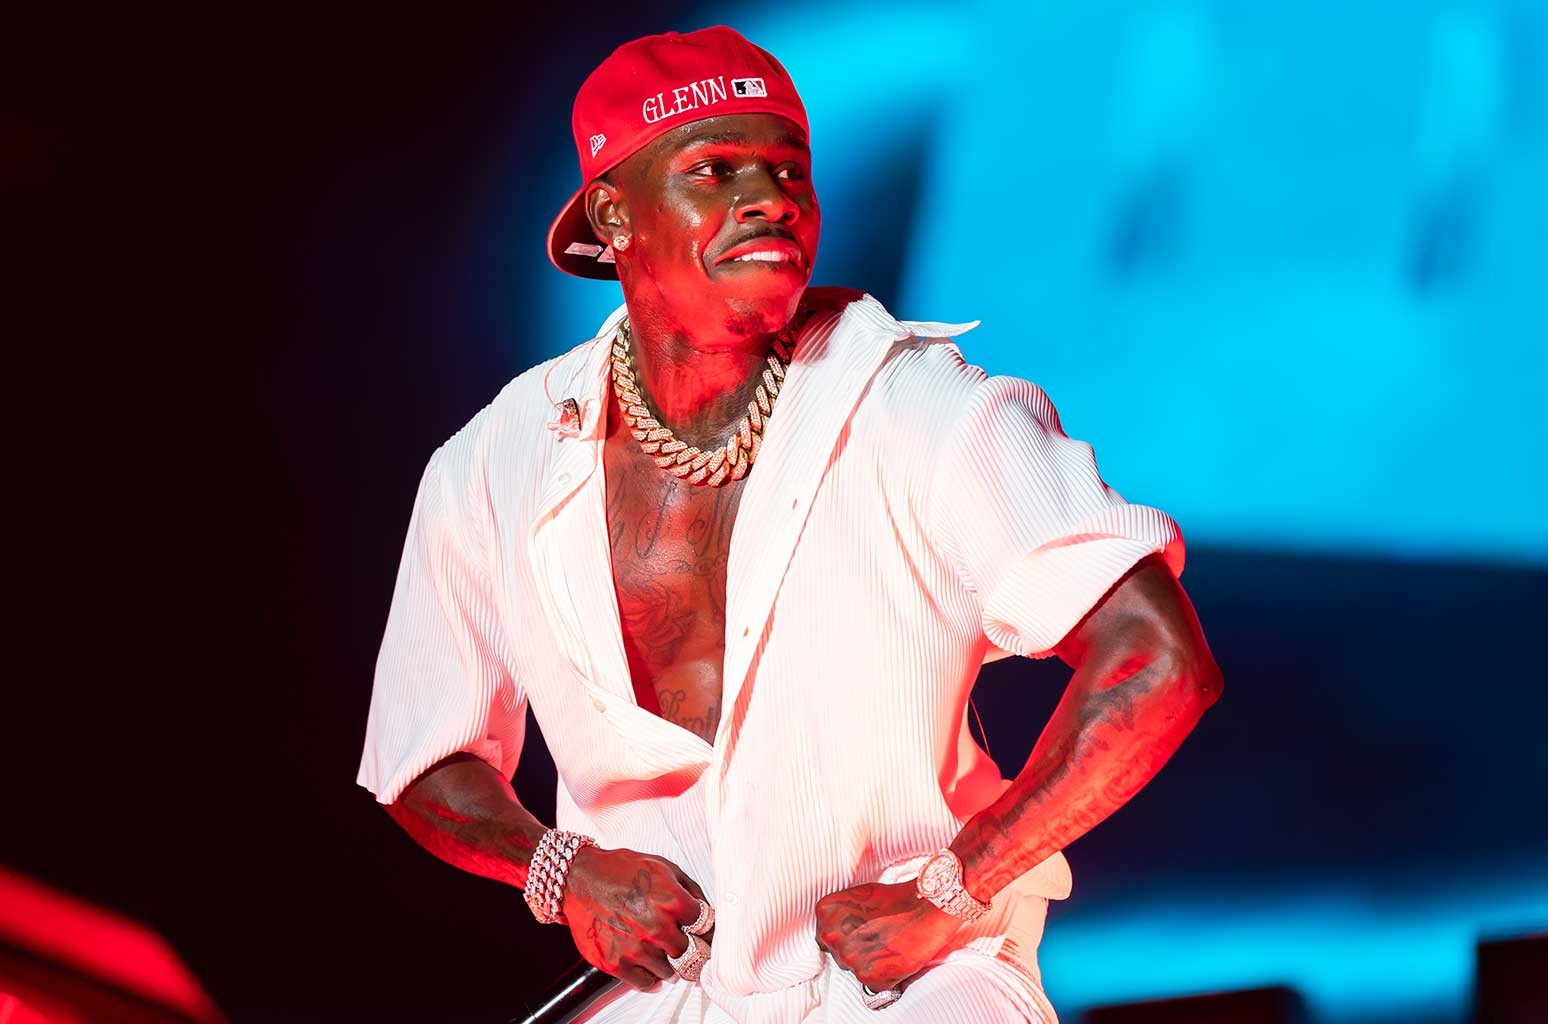 DaBaby at Rolling Loud 2021